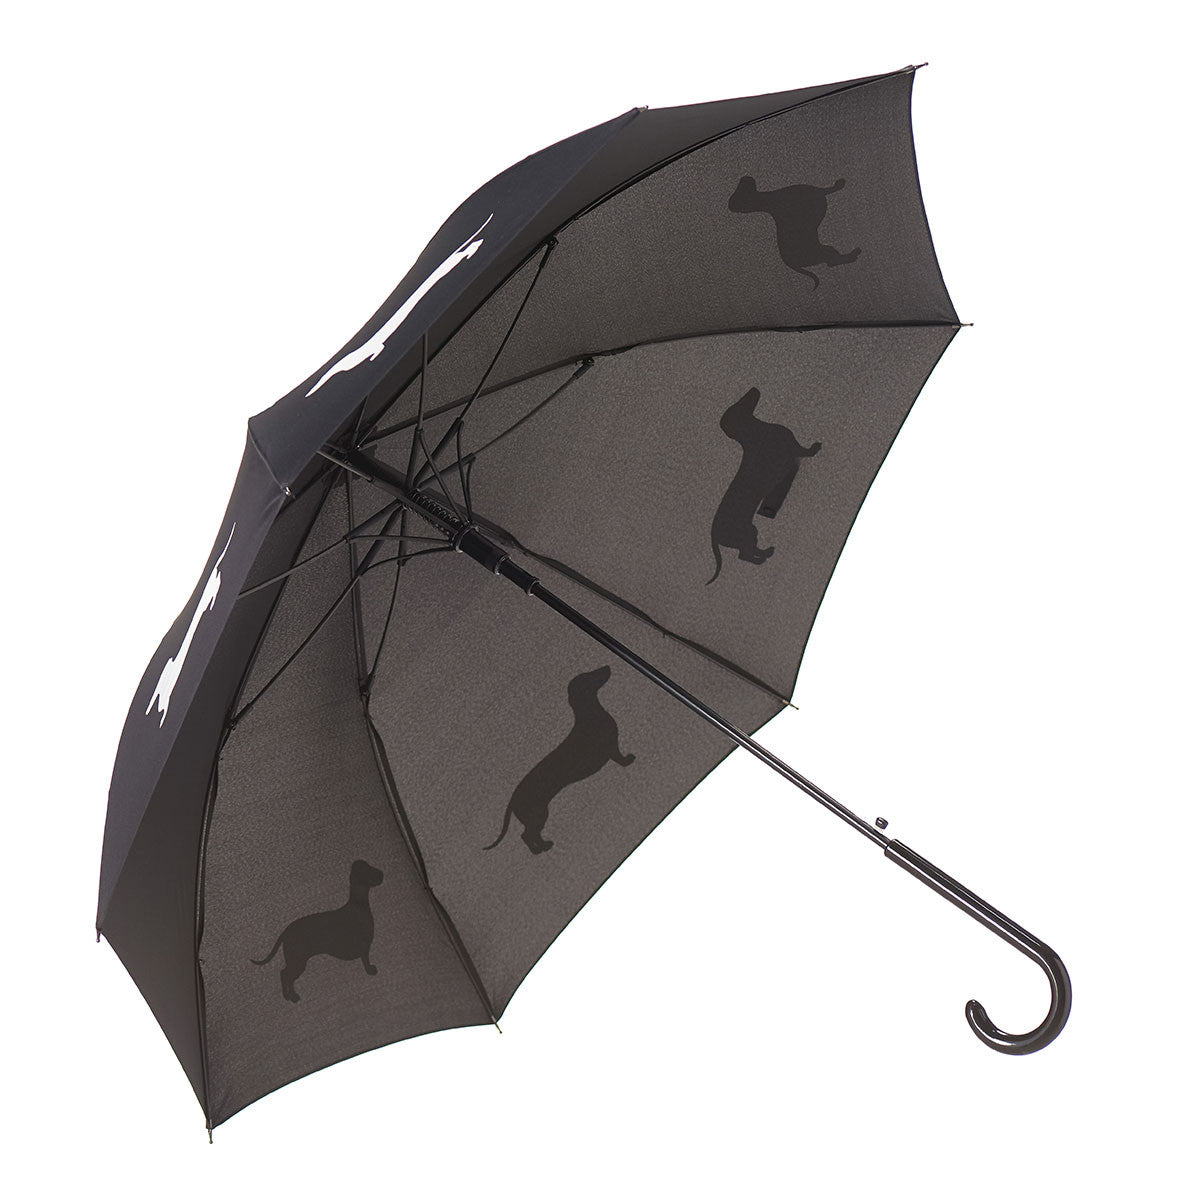 Dachshund Umbrella Auto Open Premium Quality White on Black